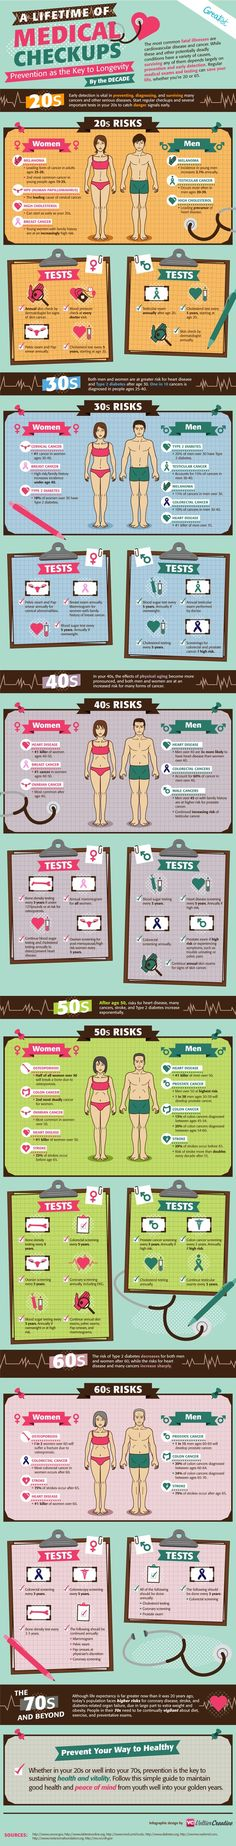 Be in the know.  Exercise and healthy eating have many benefits.  Don't be a part of these scary statistics.